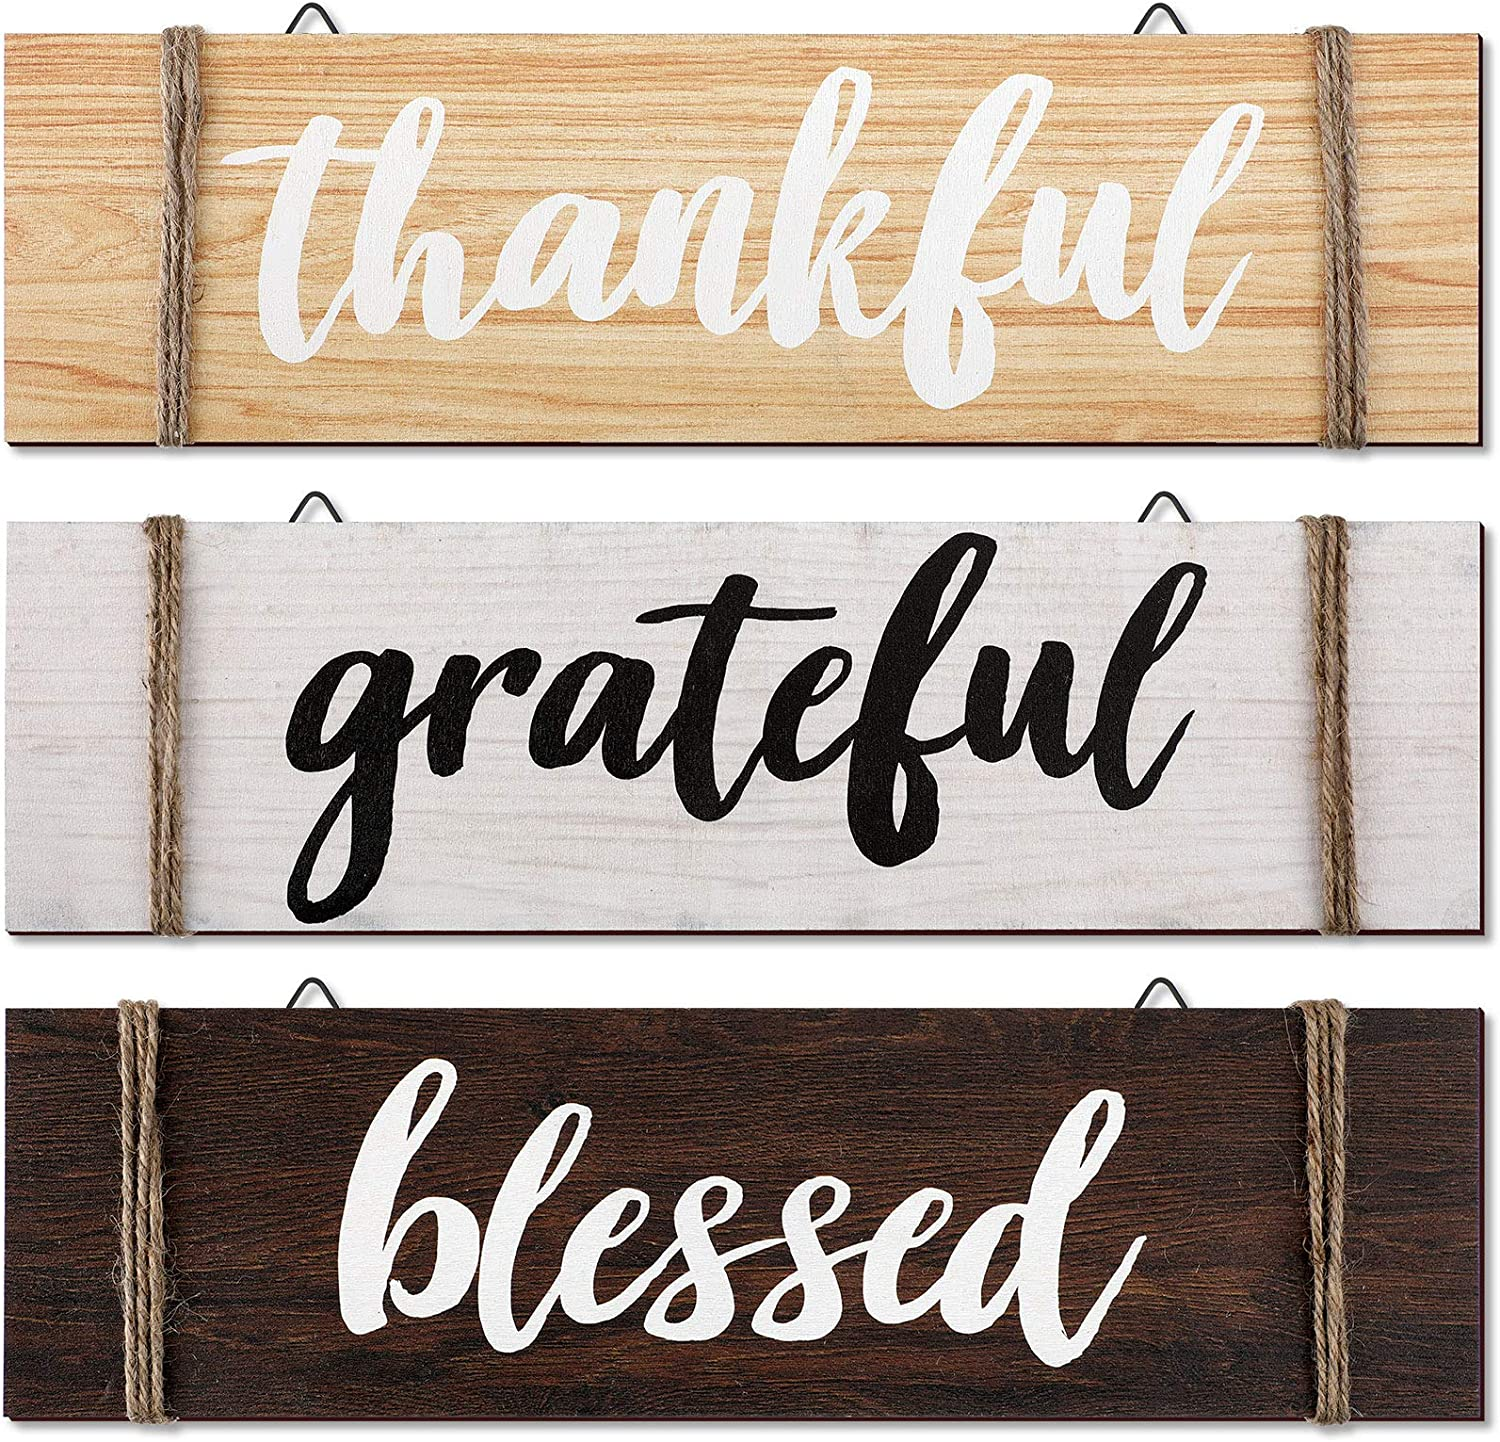 Jetec 3 Pieces Thankful Grateful Blessed Wood Sign Farmhouse Rustic Wooden Quotes Home Wall Decor Thankful Grateful Blessed Hanging Wooden Plaque for Farmhouse Entryway, 13.8 x 3.8 Inch